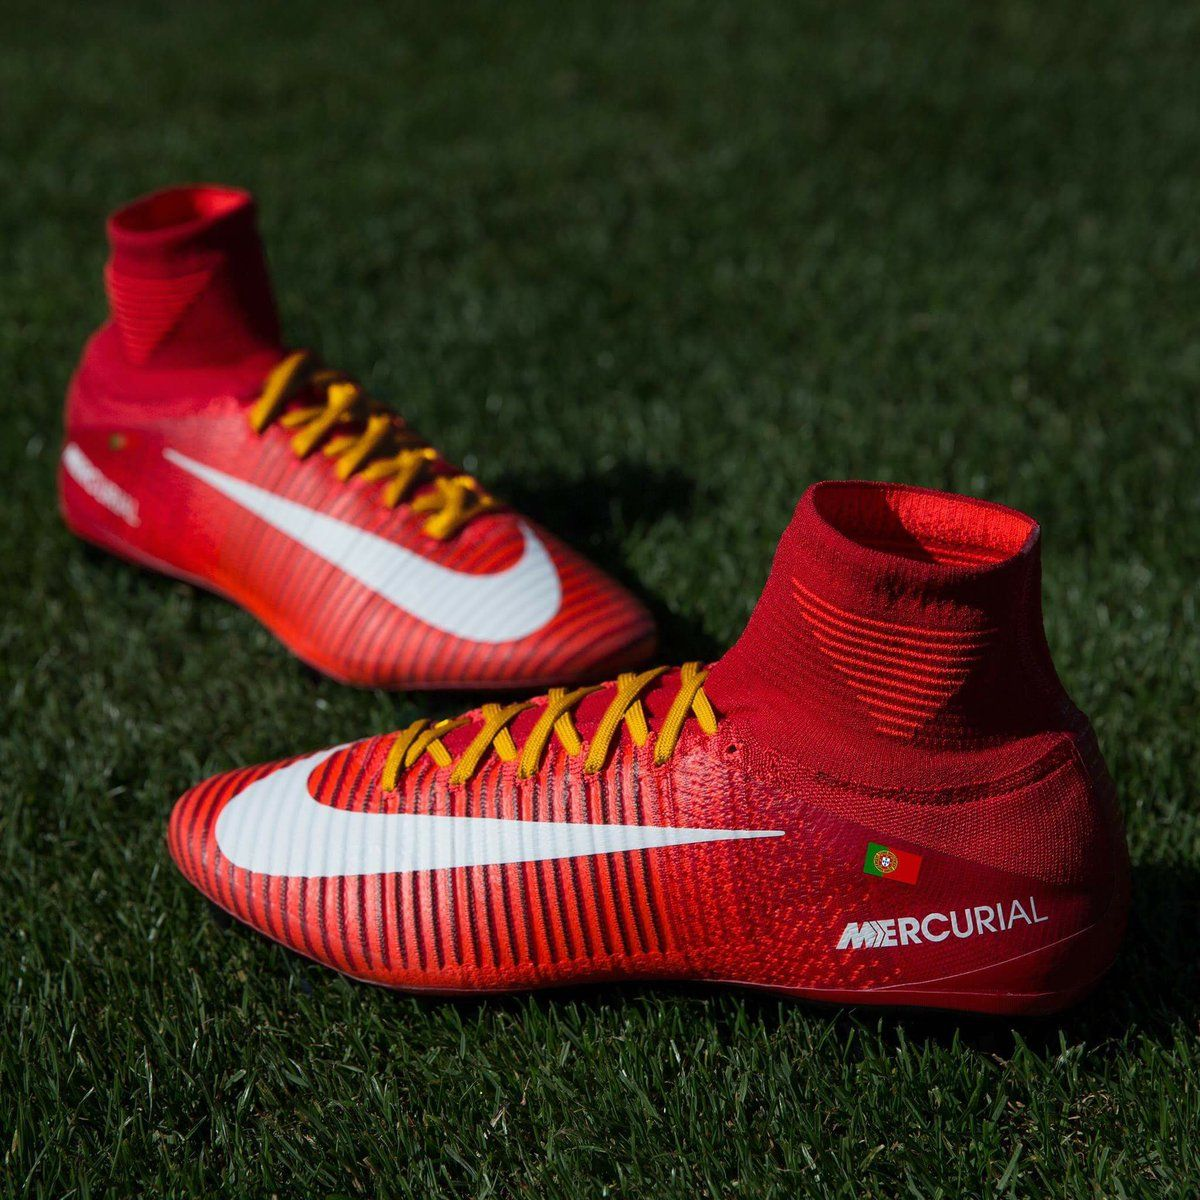 cristiano ronaldos new nike shoes